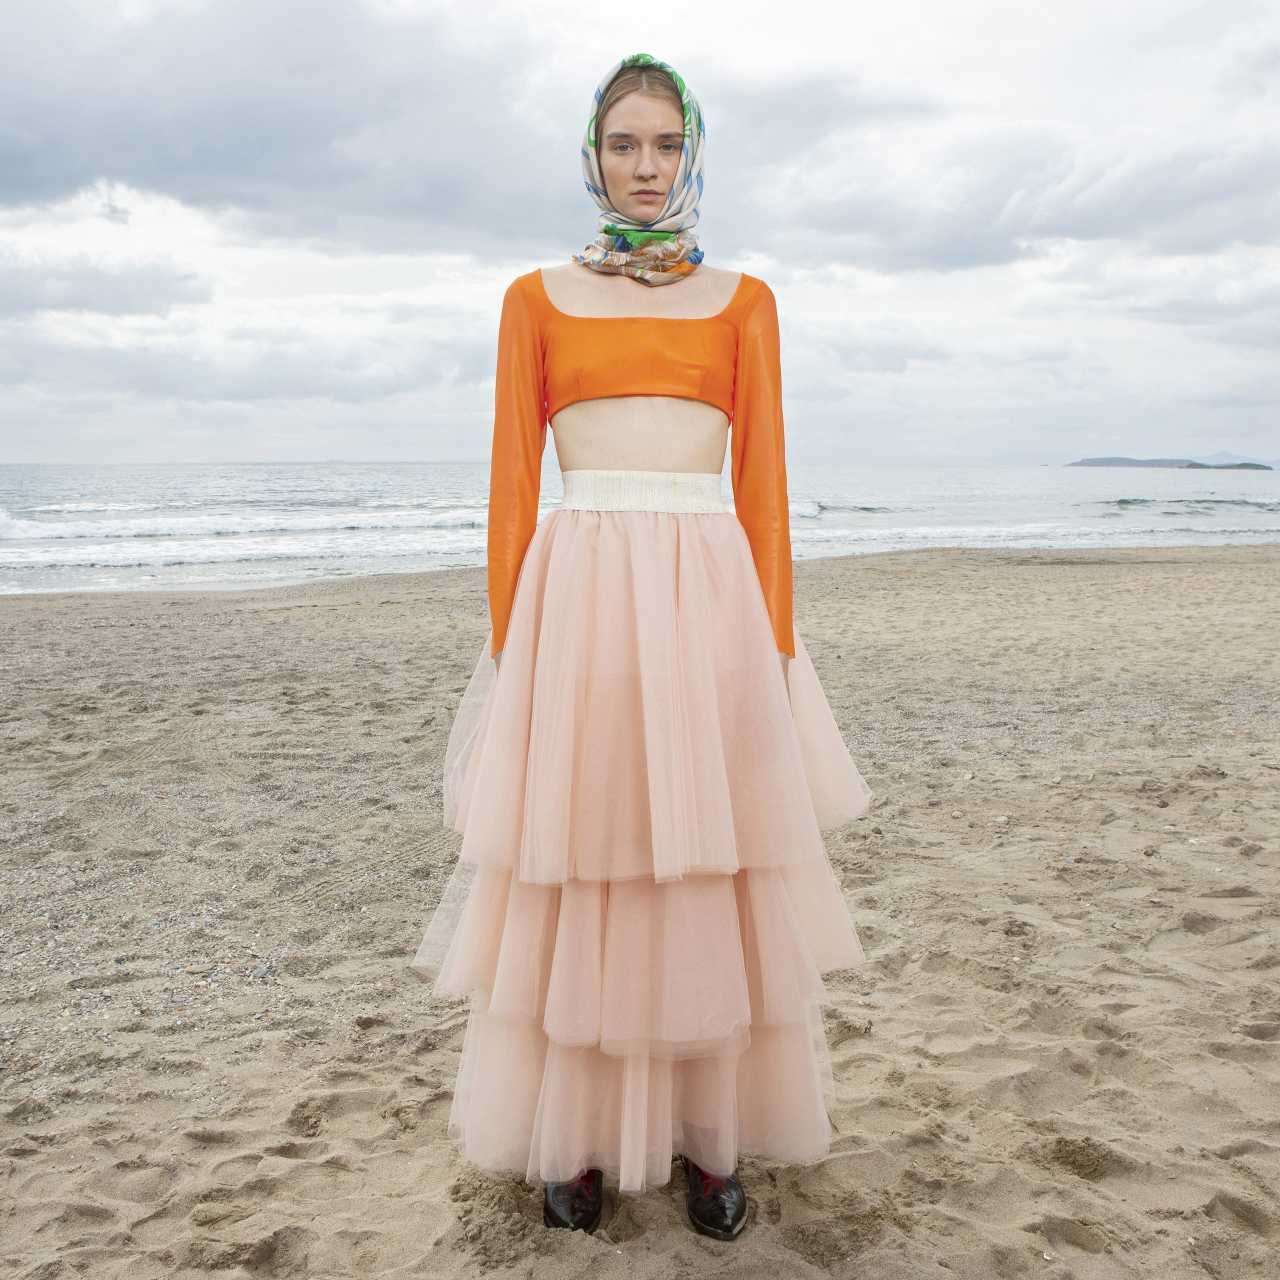 Product preview: Tulle Tutu Skirt Maxi Light Coral